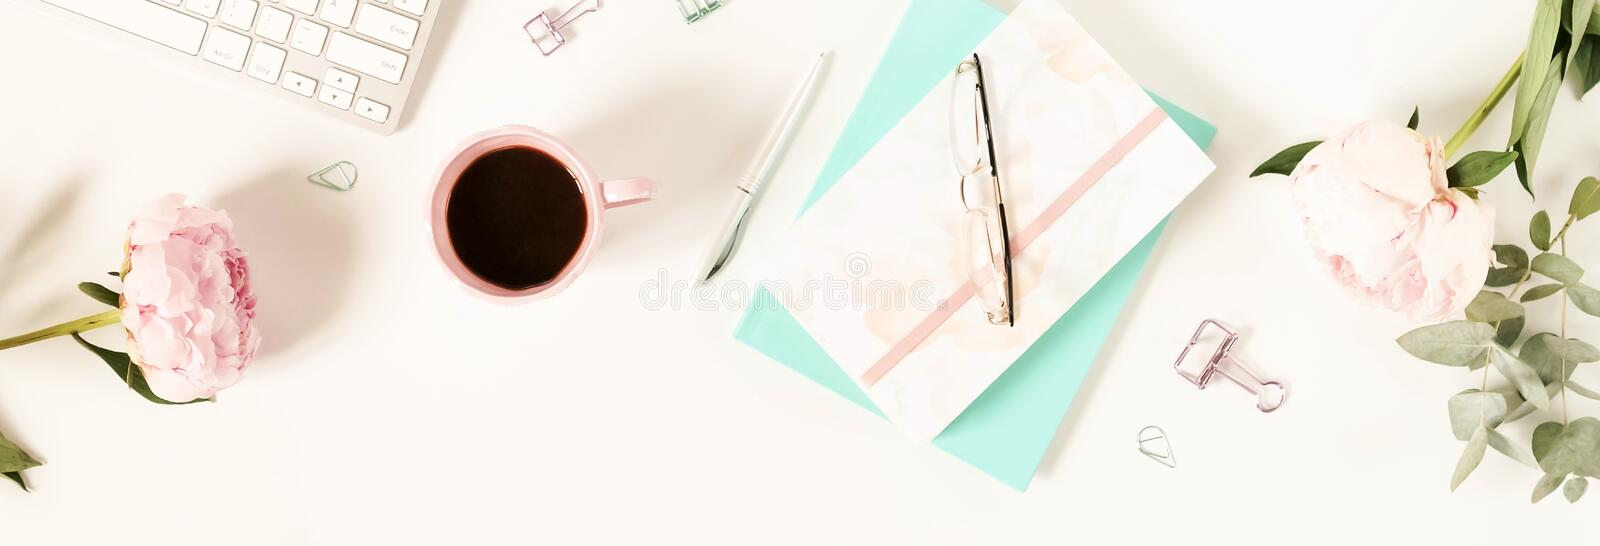 Flat lay women`s office desk. Female workspace. With laptop, flowers peonies, accessories, notebook, glasses, cup of coffee on white background. Top view stock photo